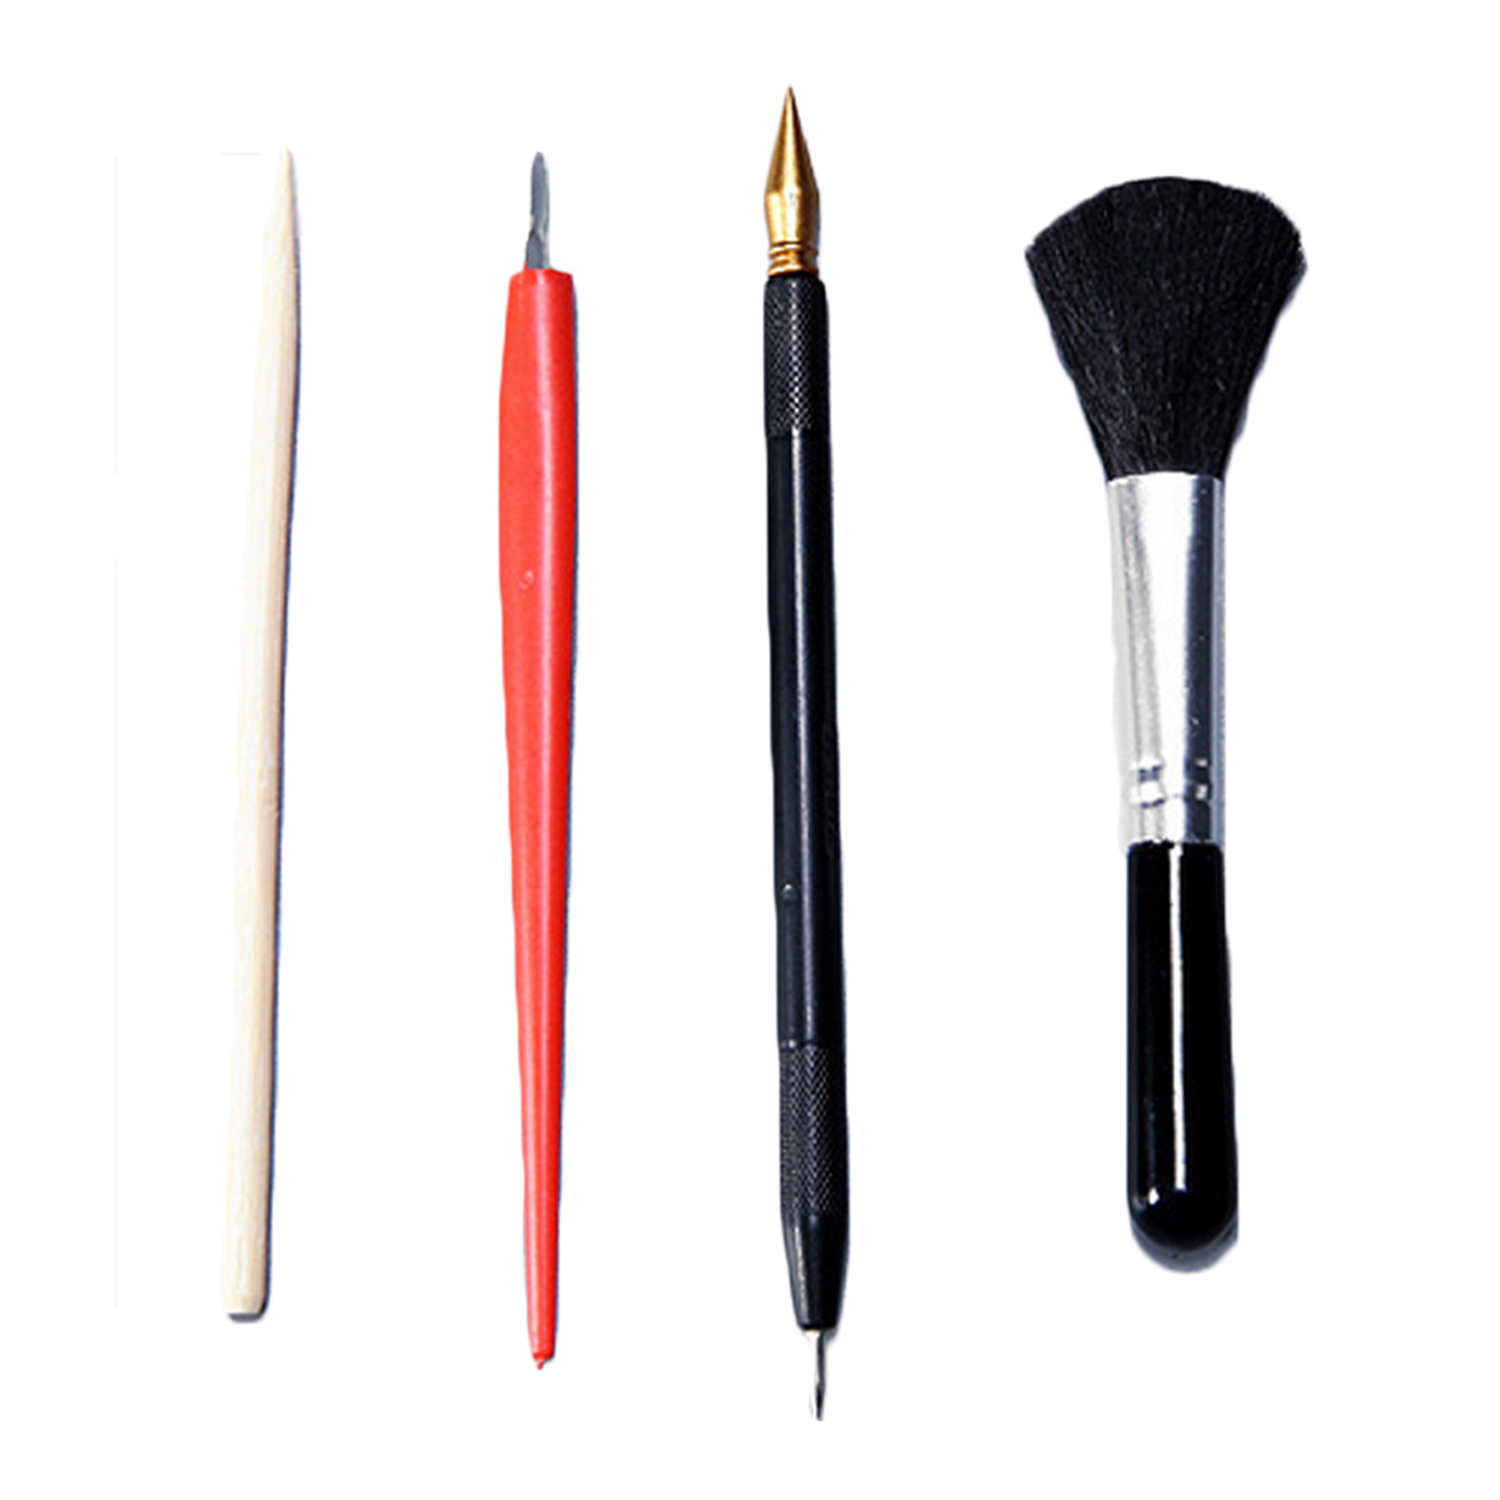 4 Magic Scratch Painting Tool Drawing Scraping Set With Stick Scraper Pen Black Brush For DIY Painting Crafts Toys